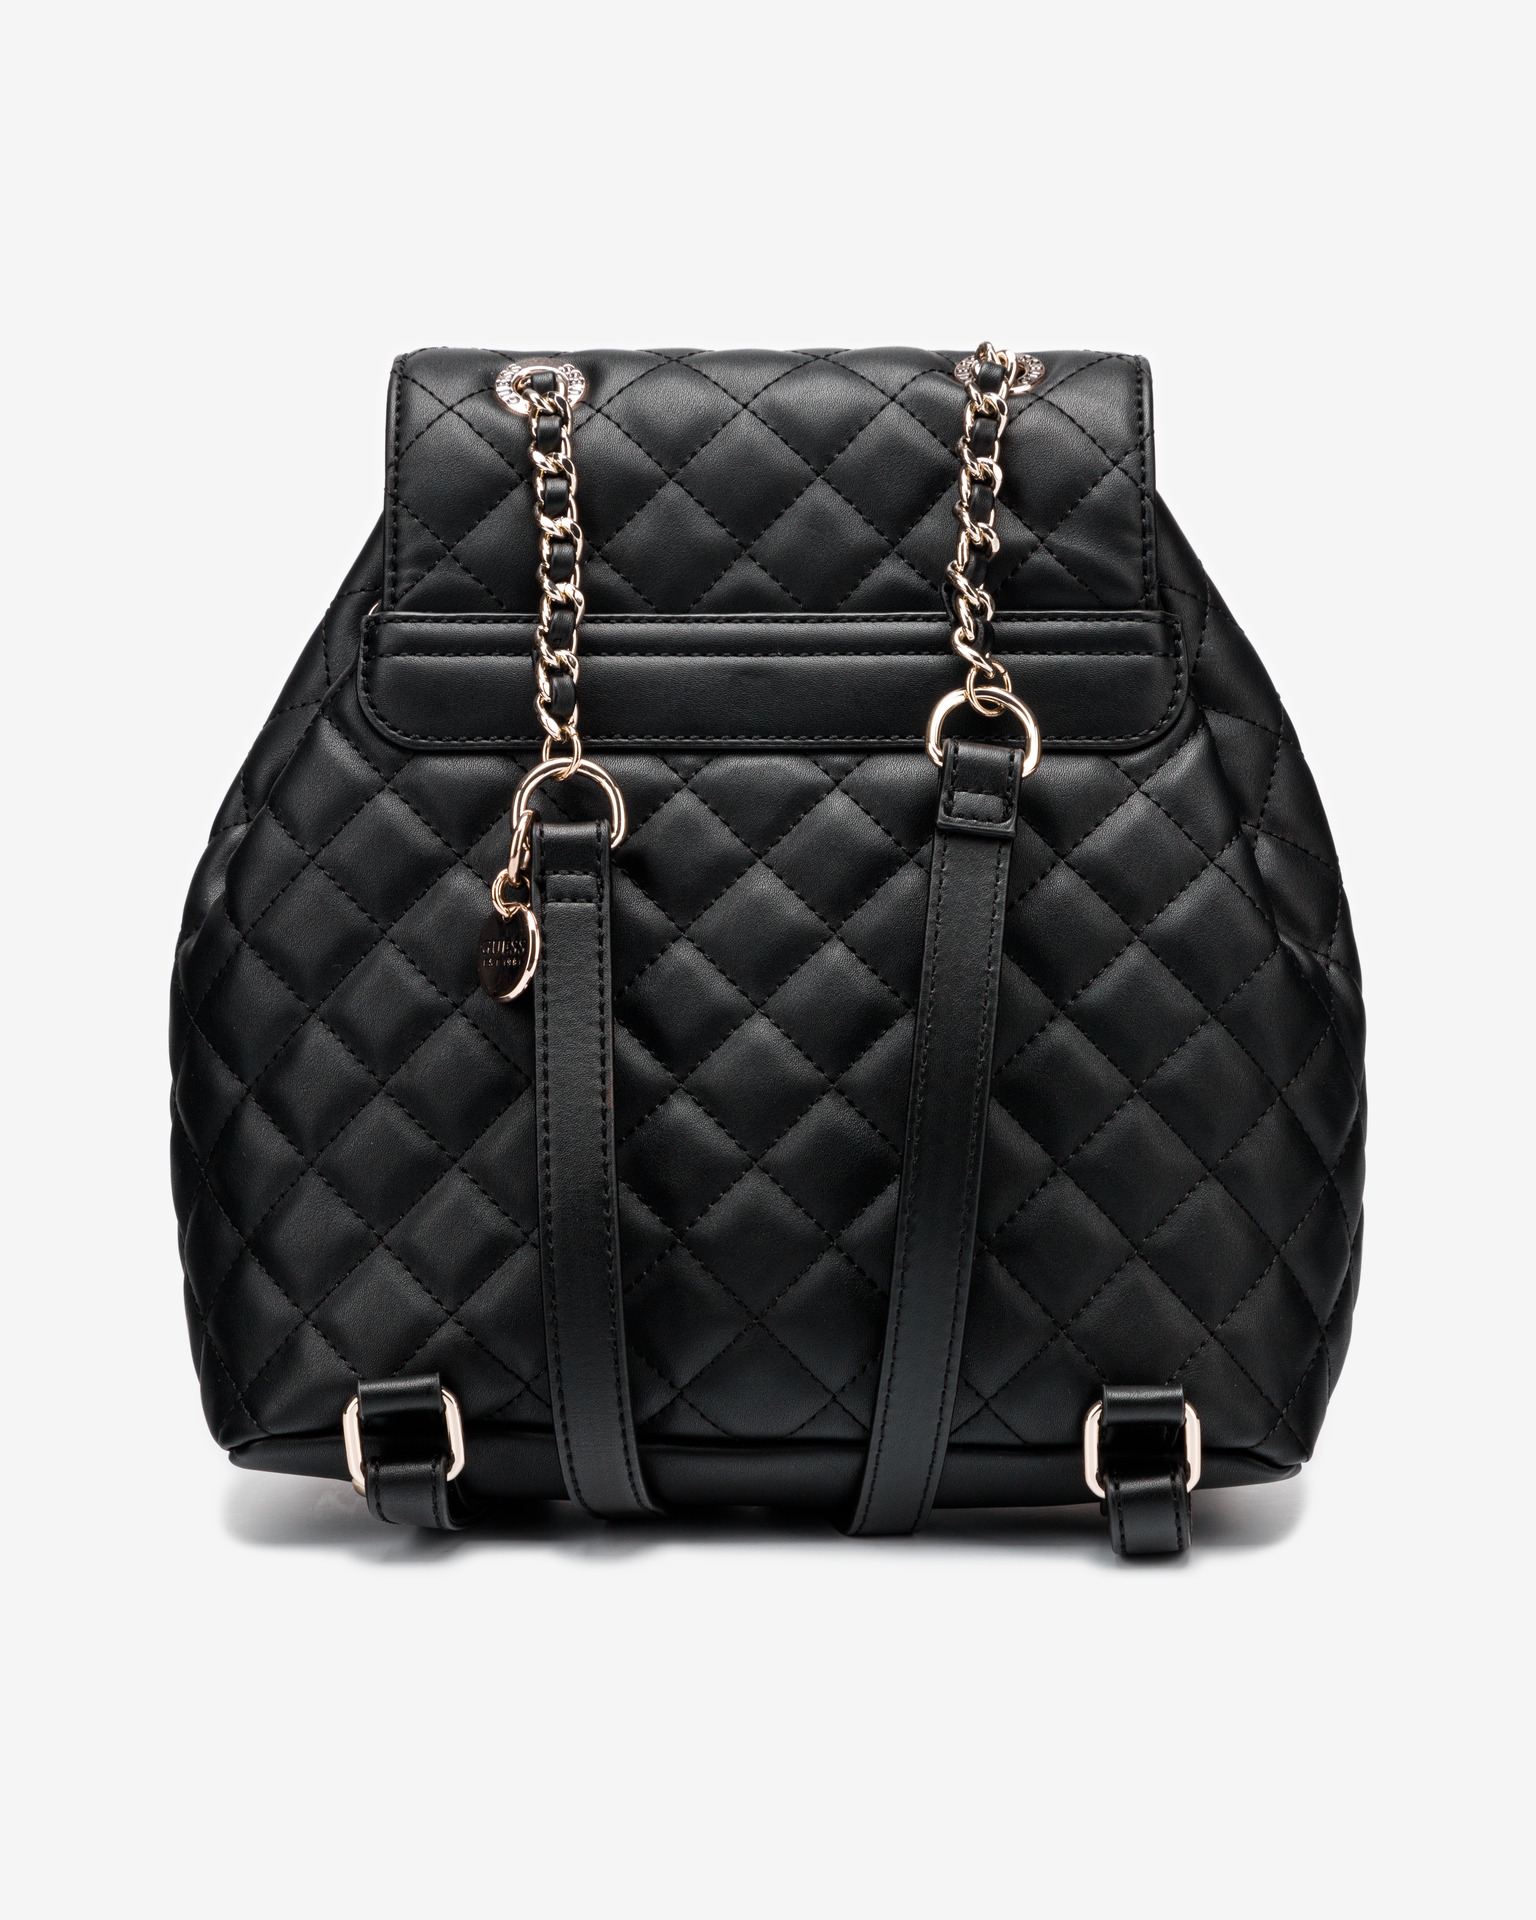 Guess black backpack Illy